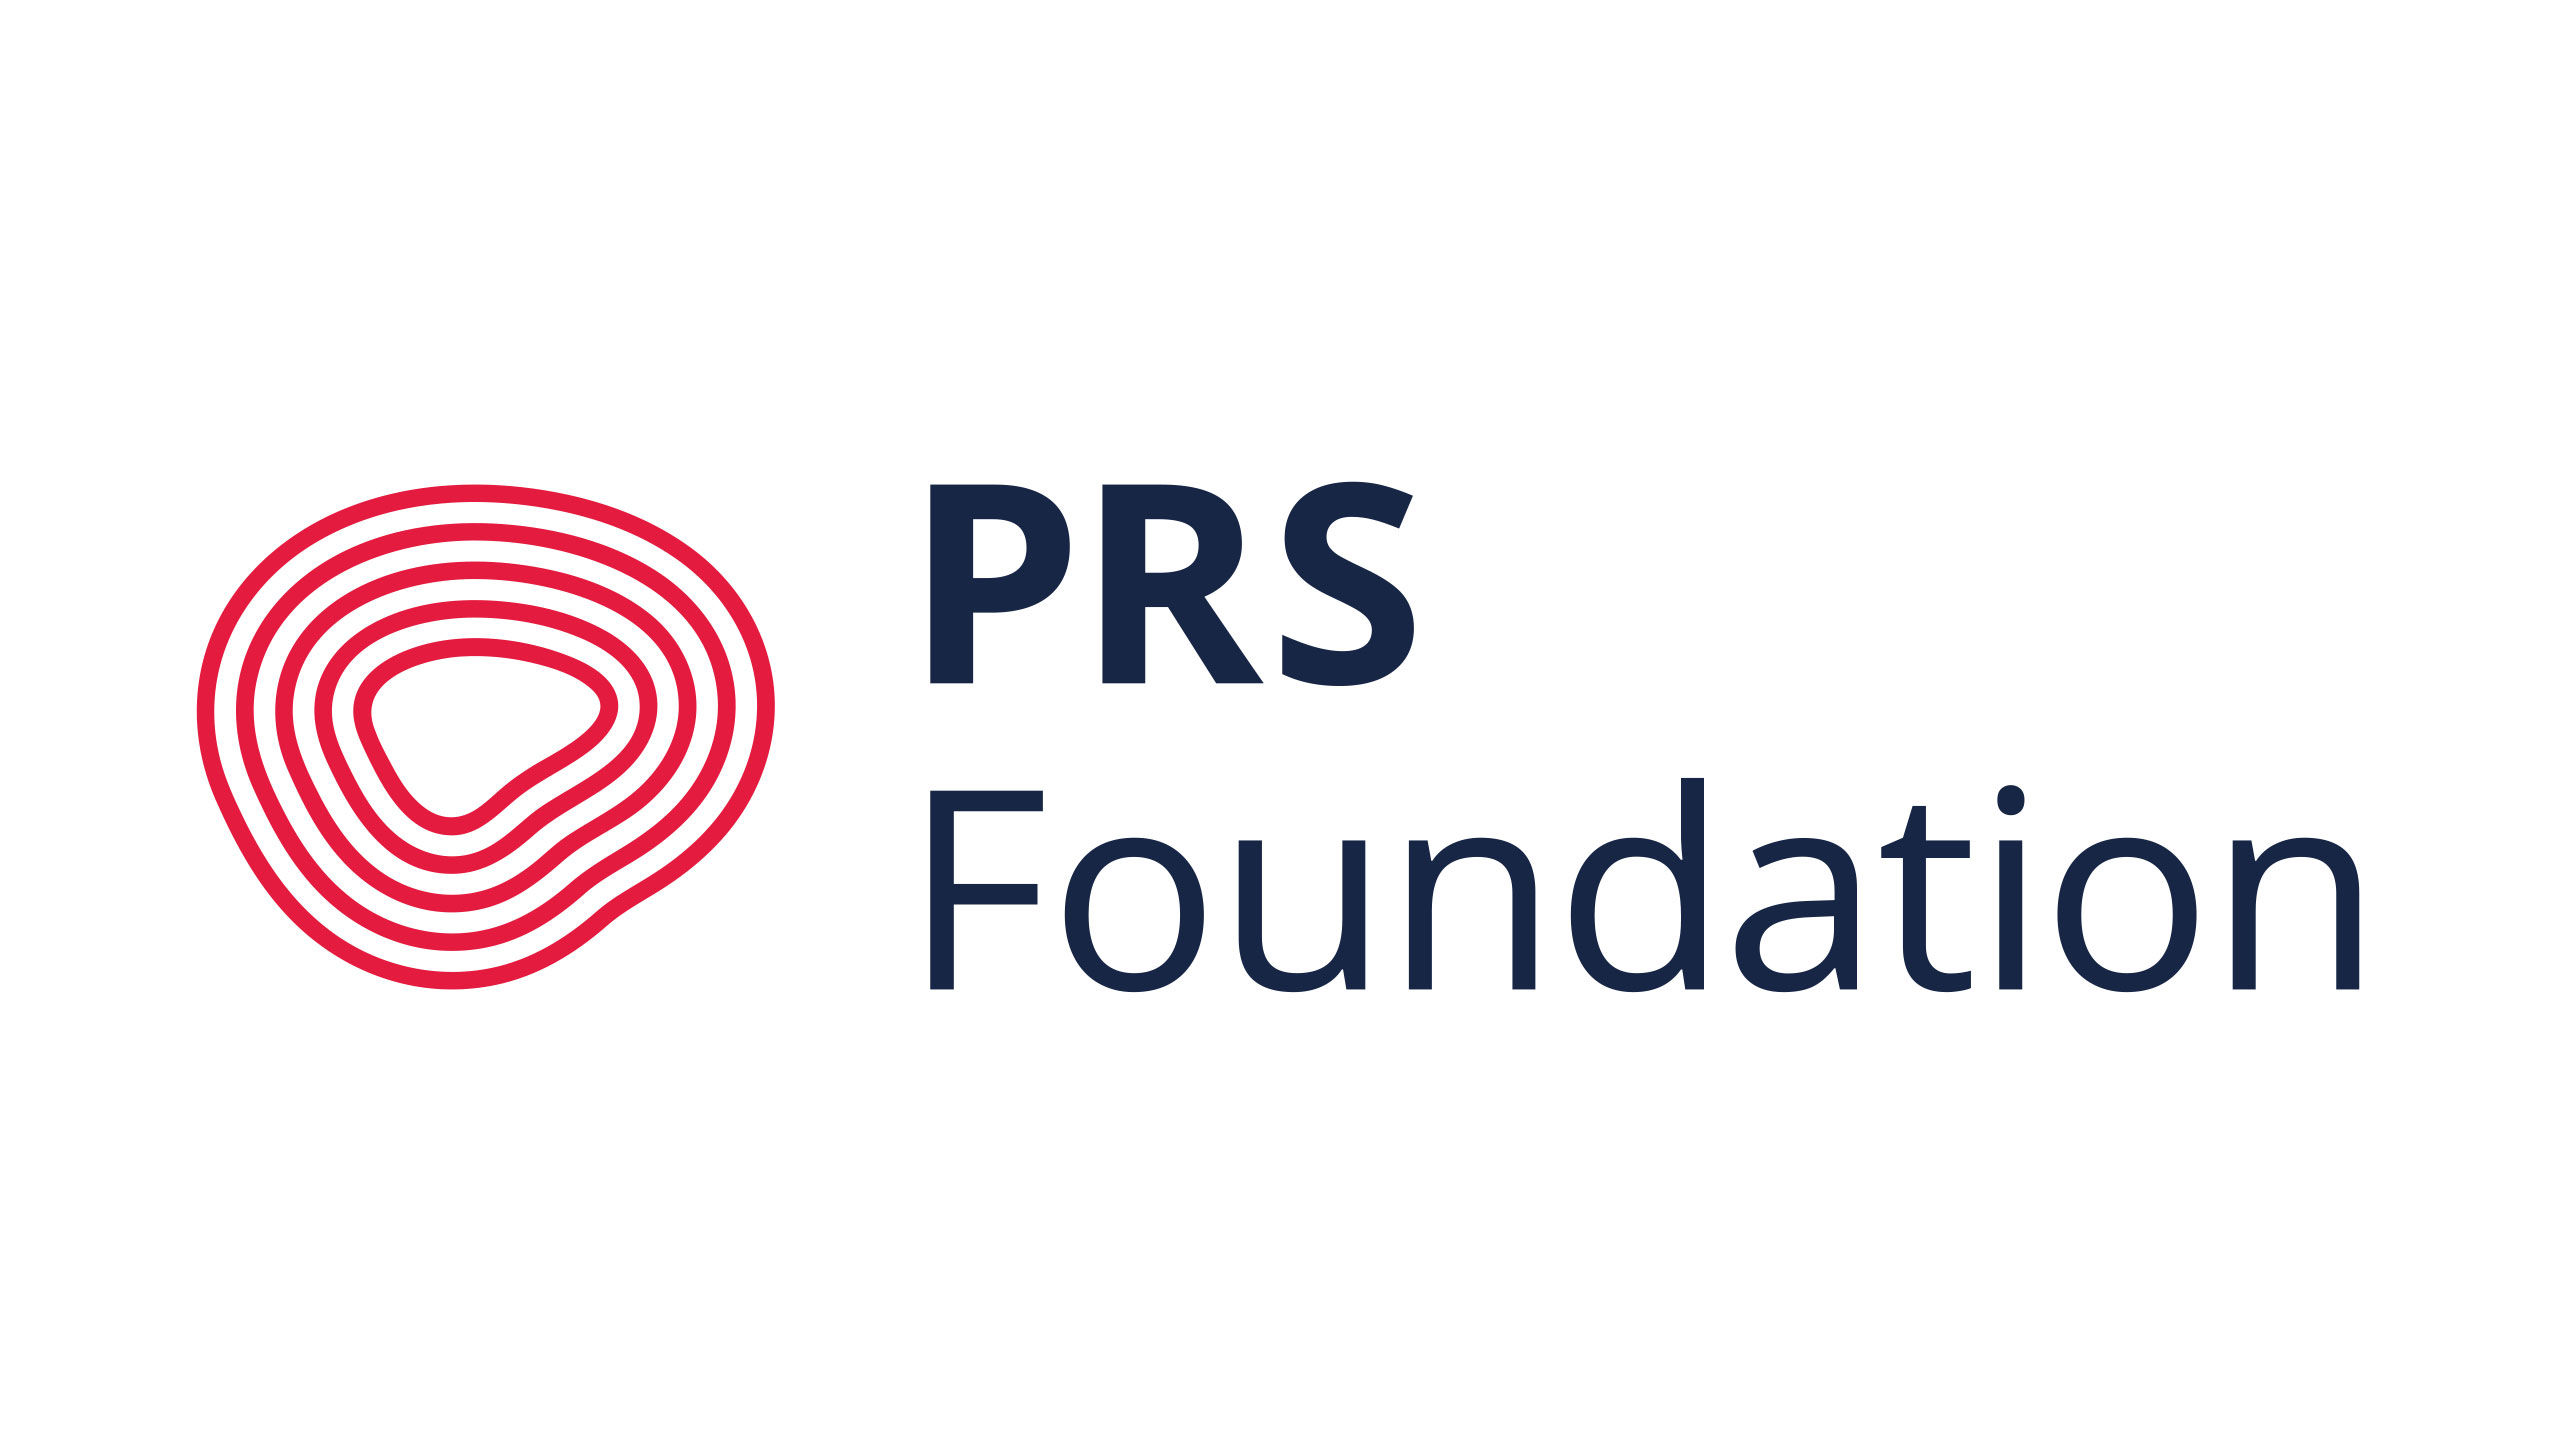 GOAT GIRL, Mystry, Santino Le Saint and Arborist among the latest artists to receive support from PRS Foundation's PPL Momentum Music Fund